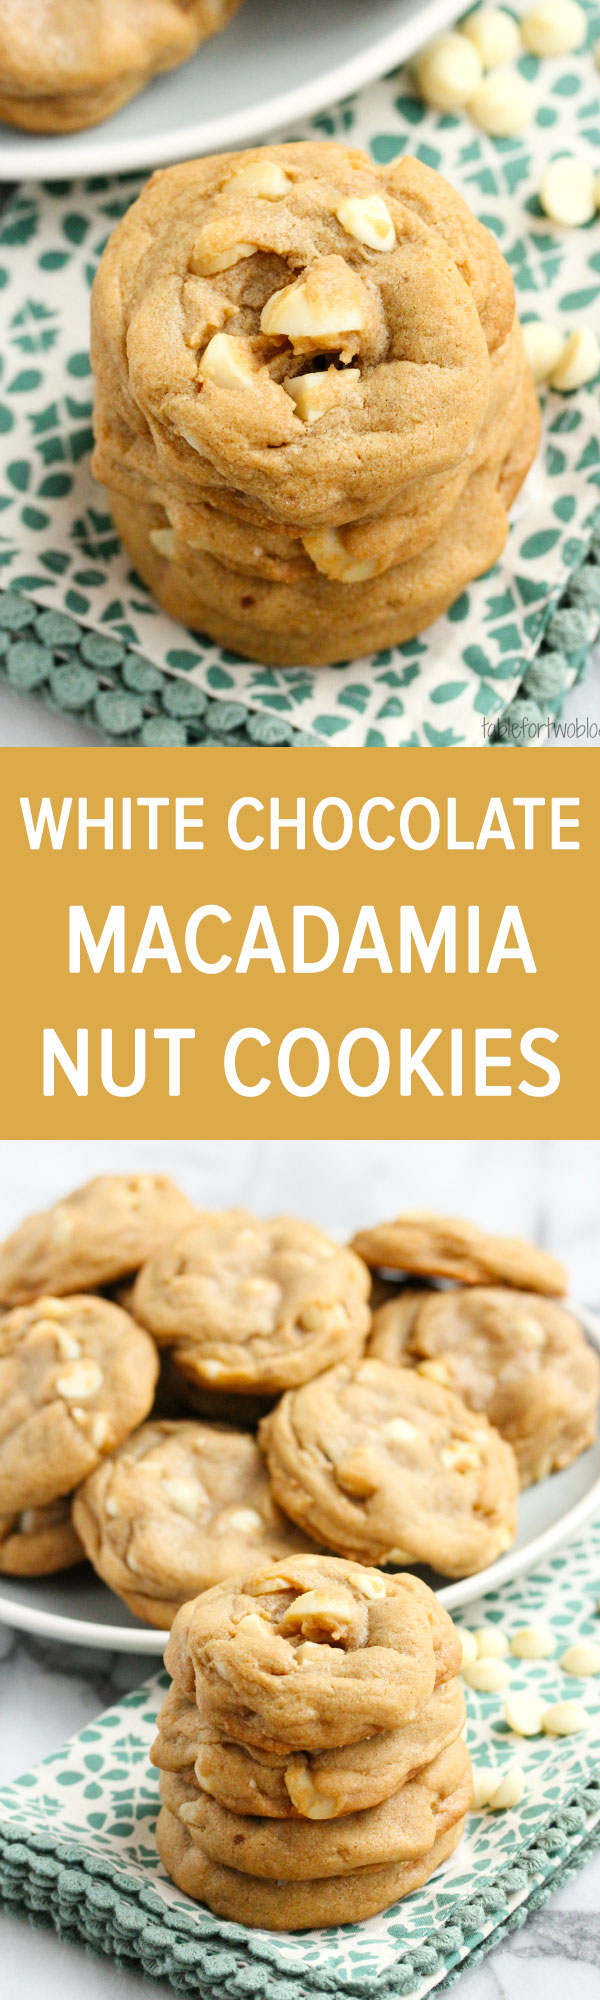 White Chocolate Macadamia Nut Cookies - Table for Two® by